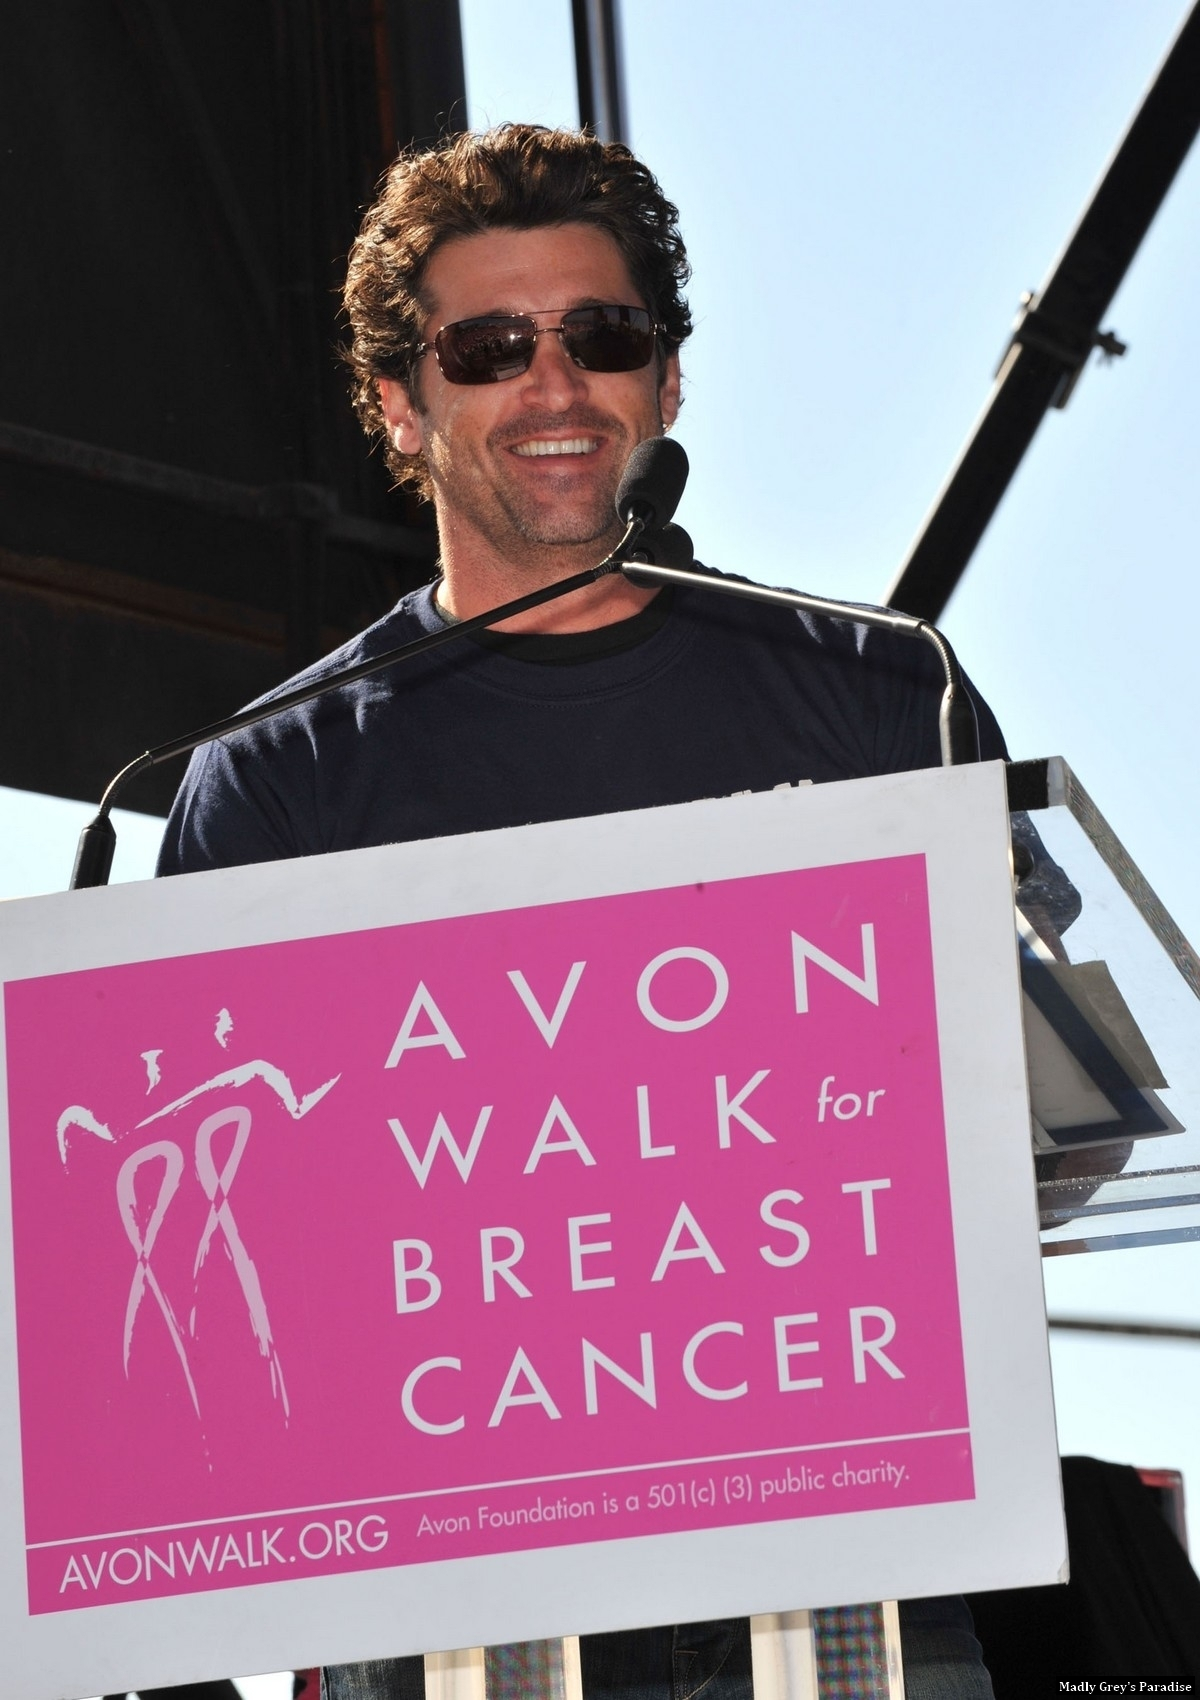 Patrick Dempsey at 'Avon Walk for Breast Cancer' - patrick-dempsey photo